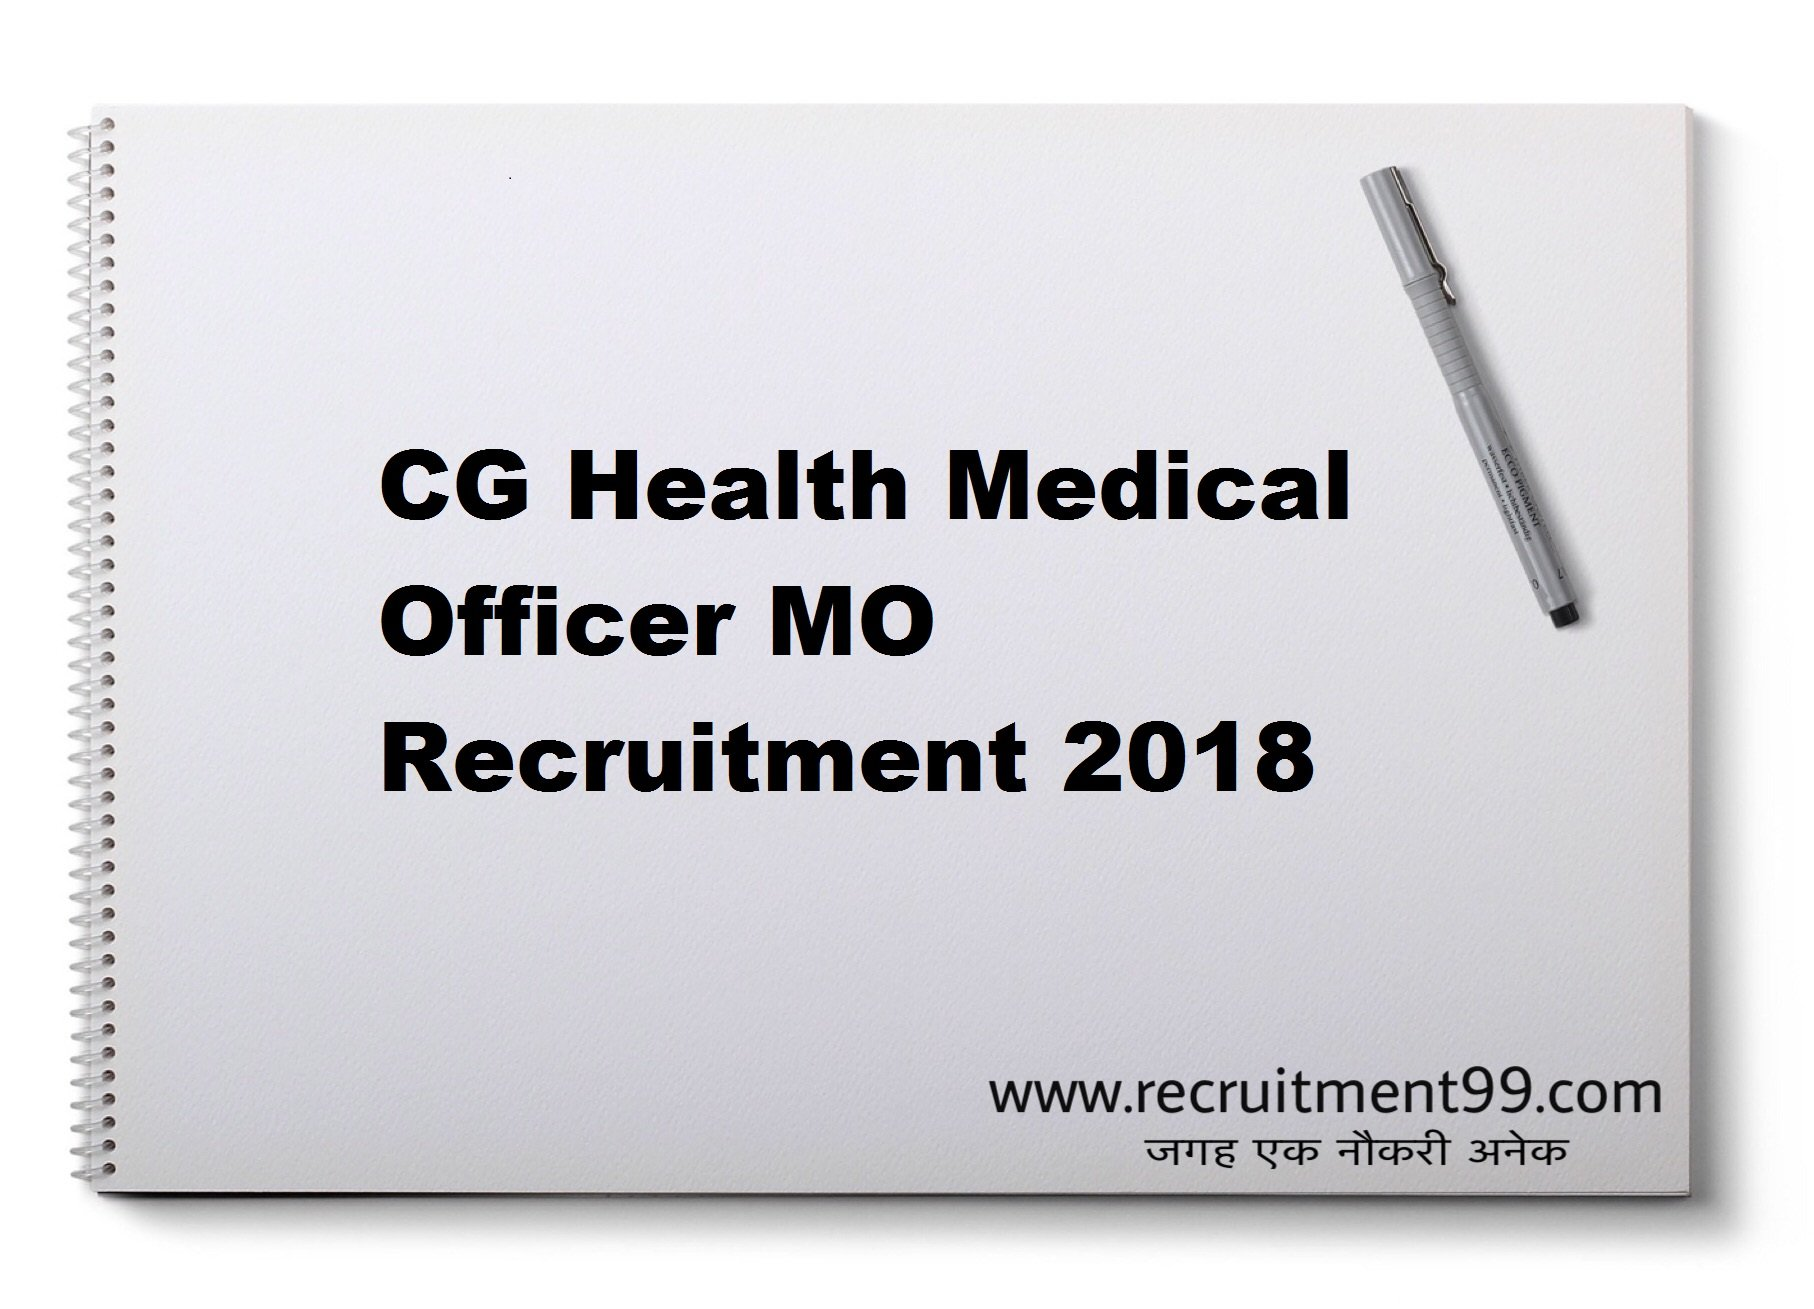 CG Health Medical Officer MO Recruitment Admit Card Result 2018